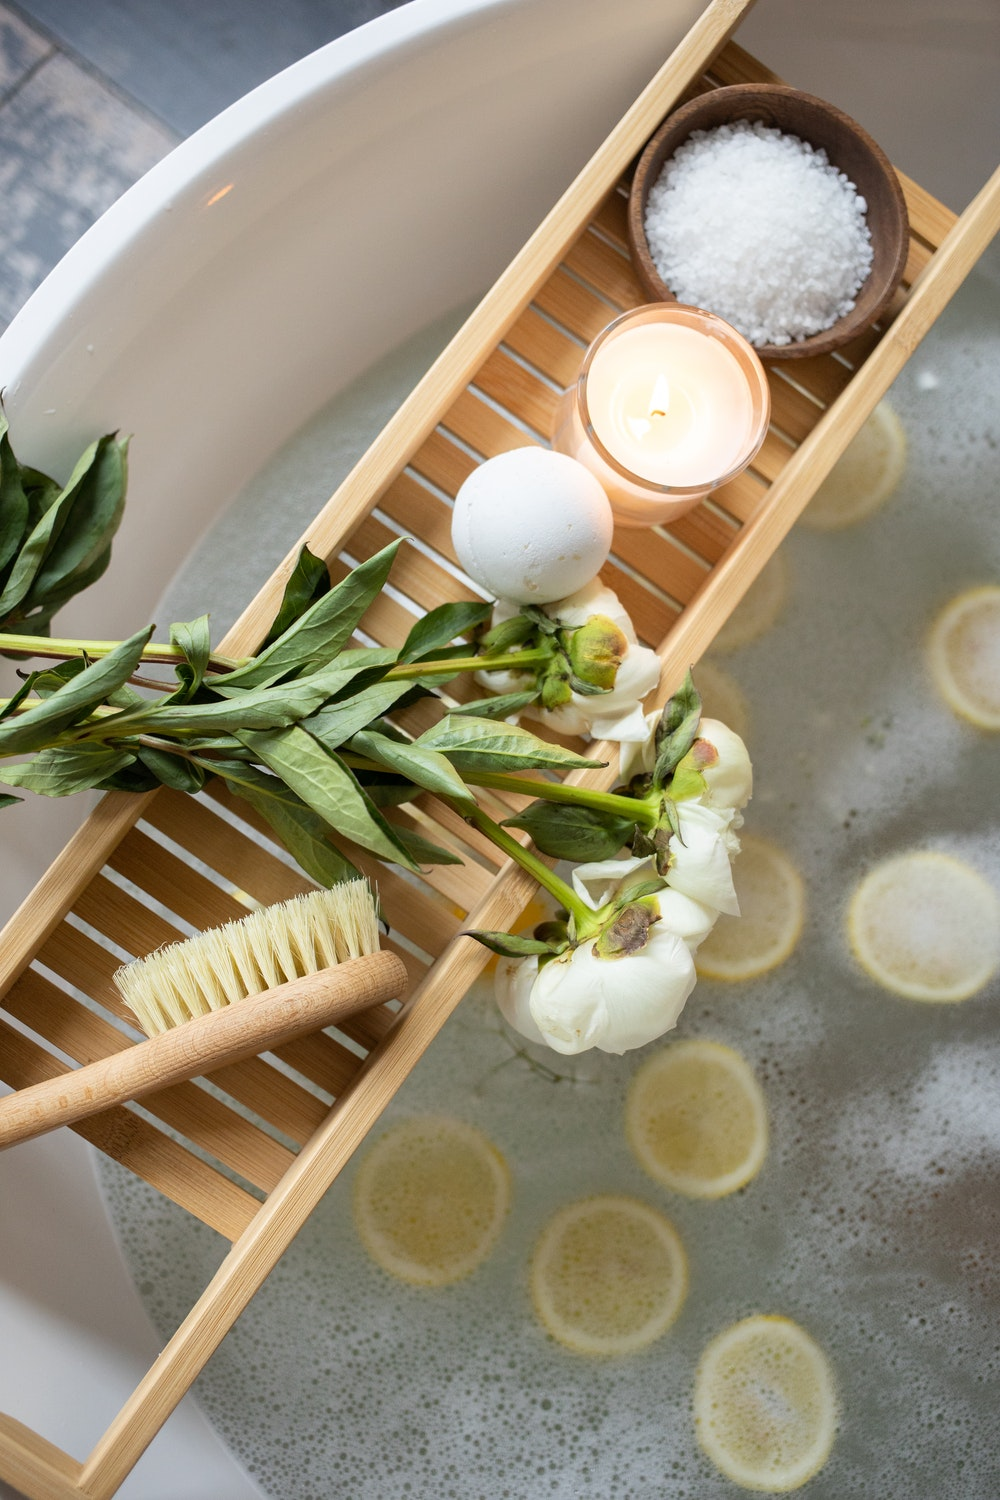 Easy ways to keep on top of your bathroom cleaning